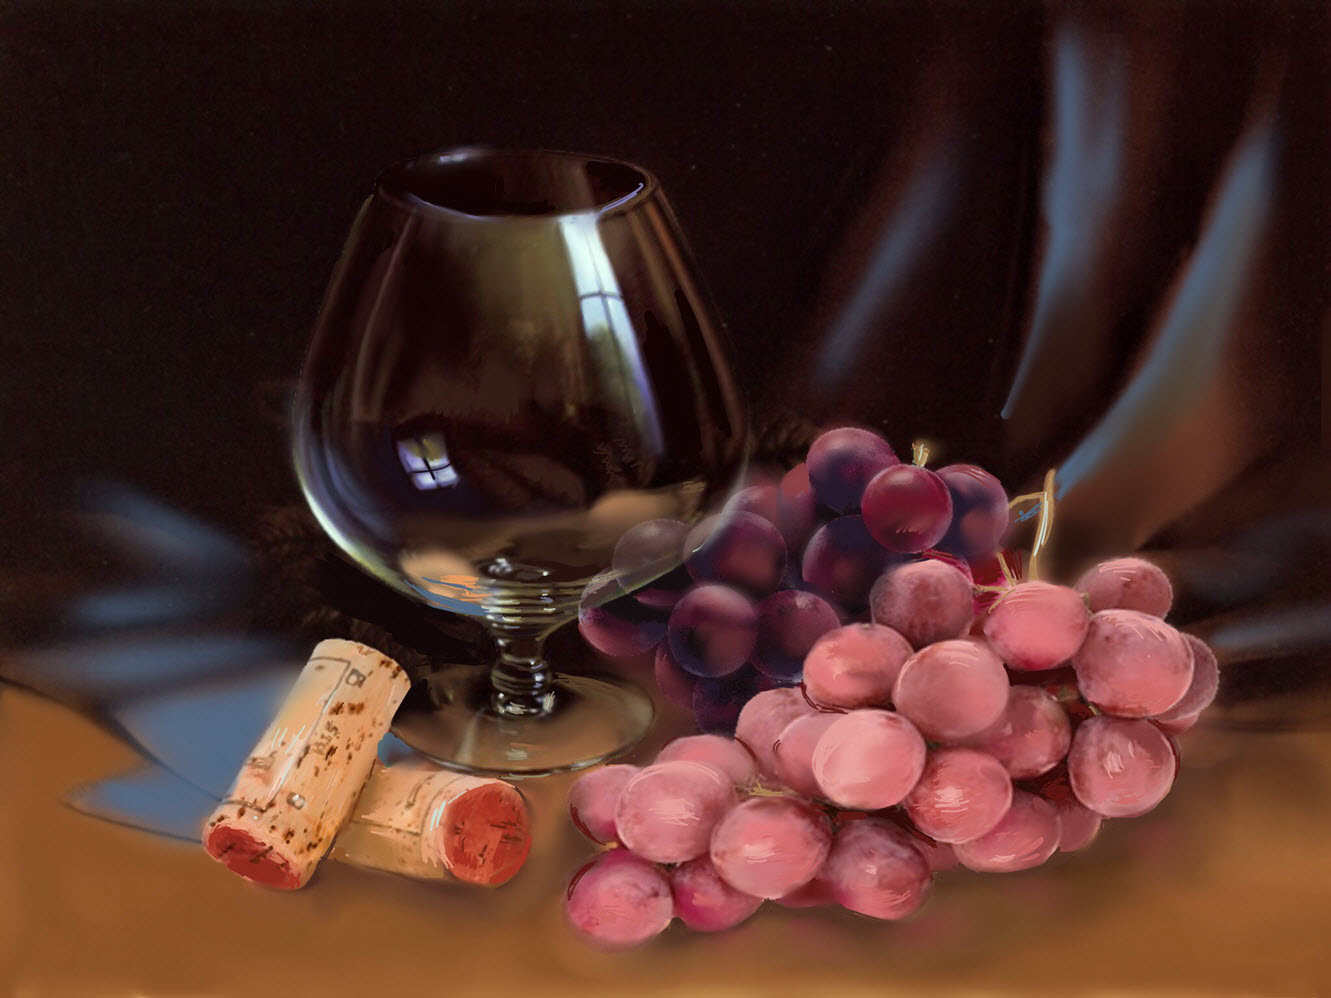 Still life with wine glass and grapes